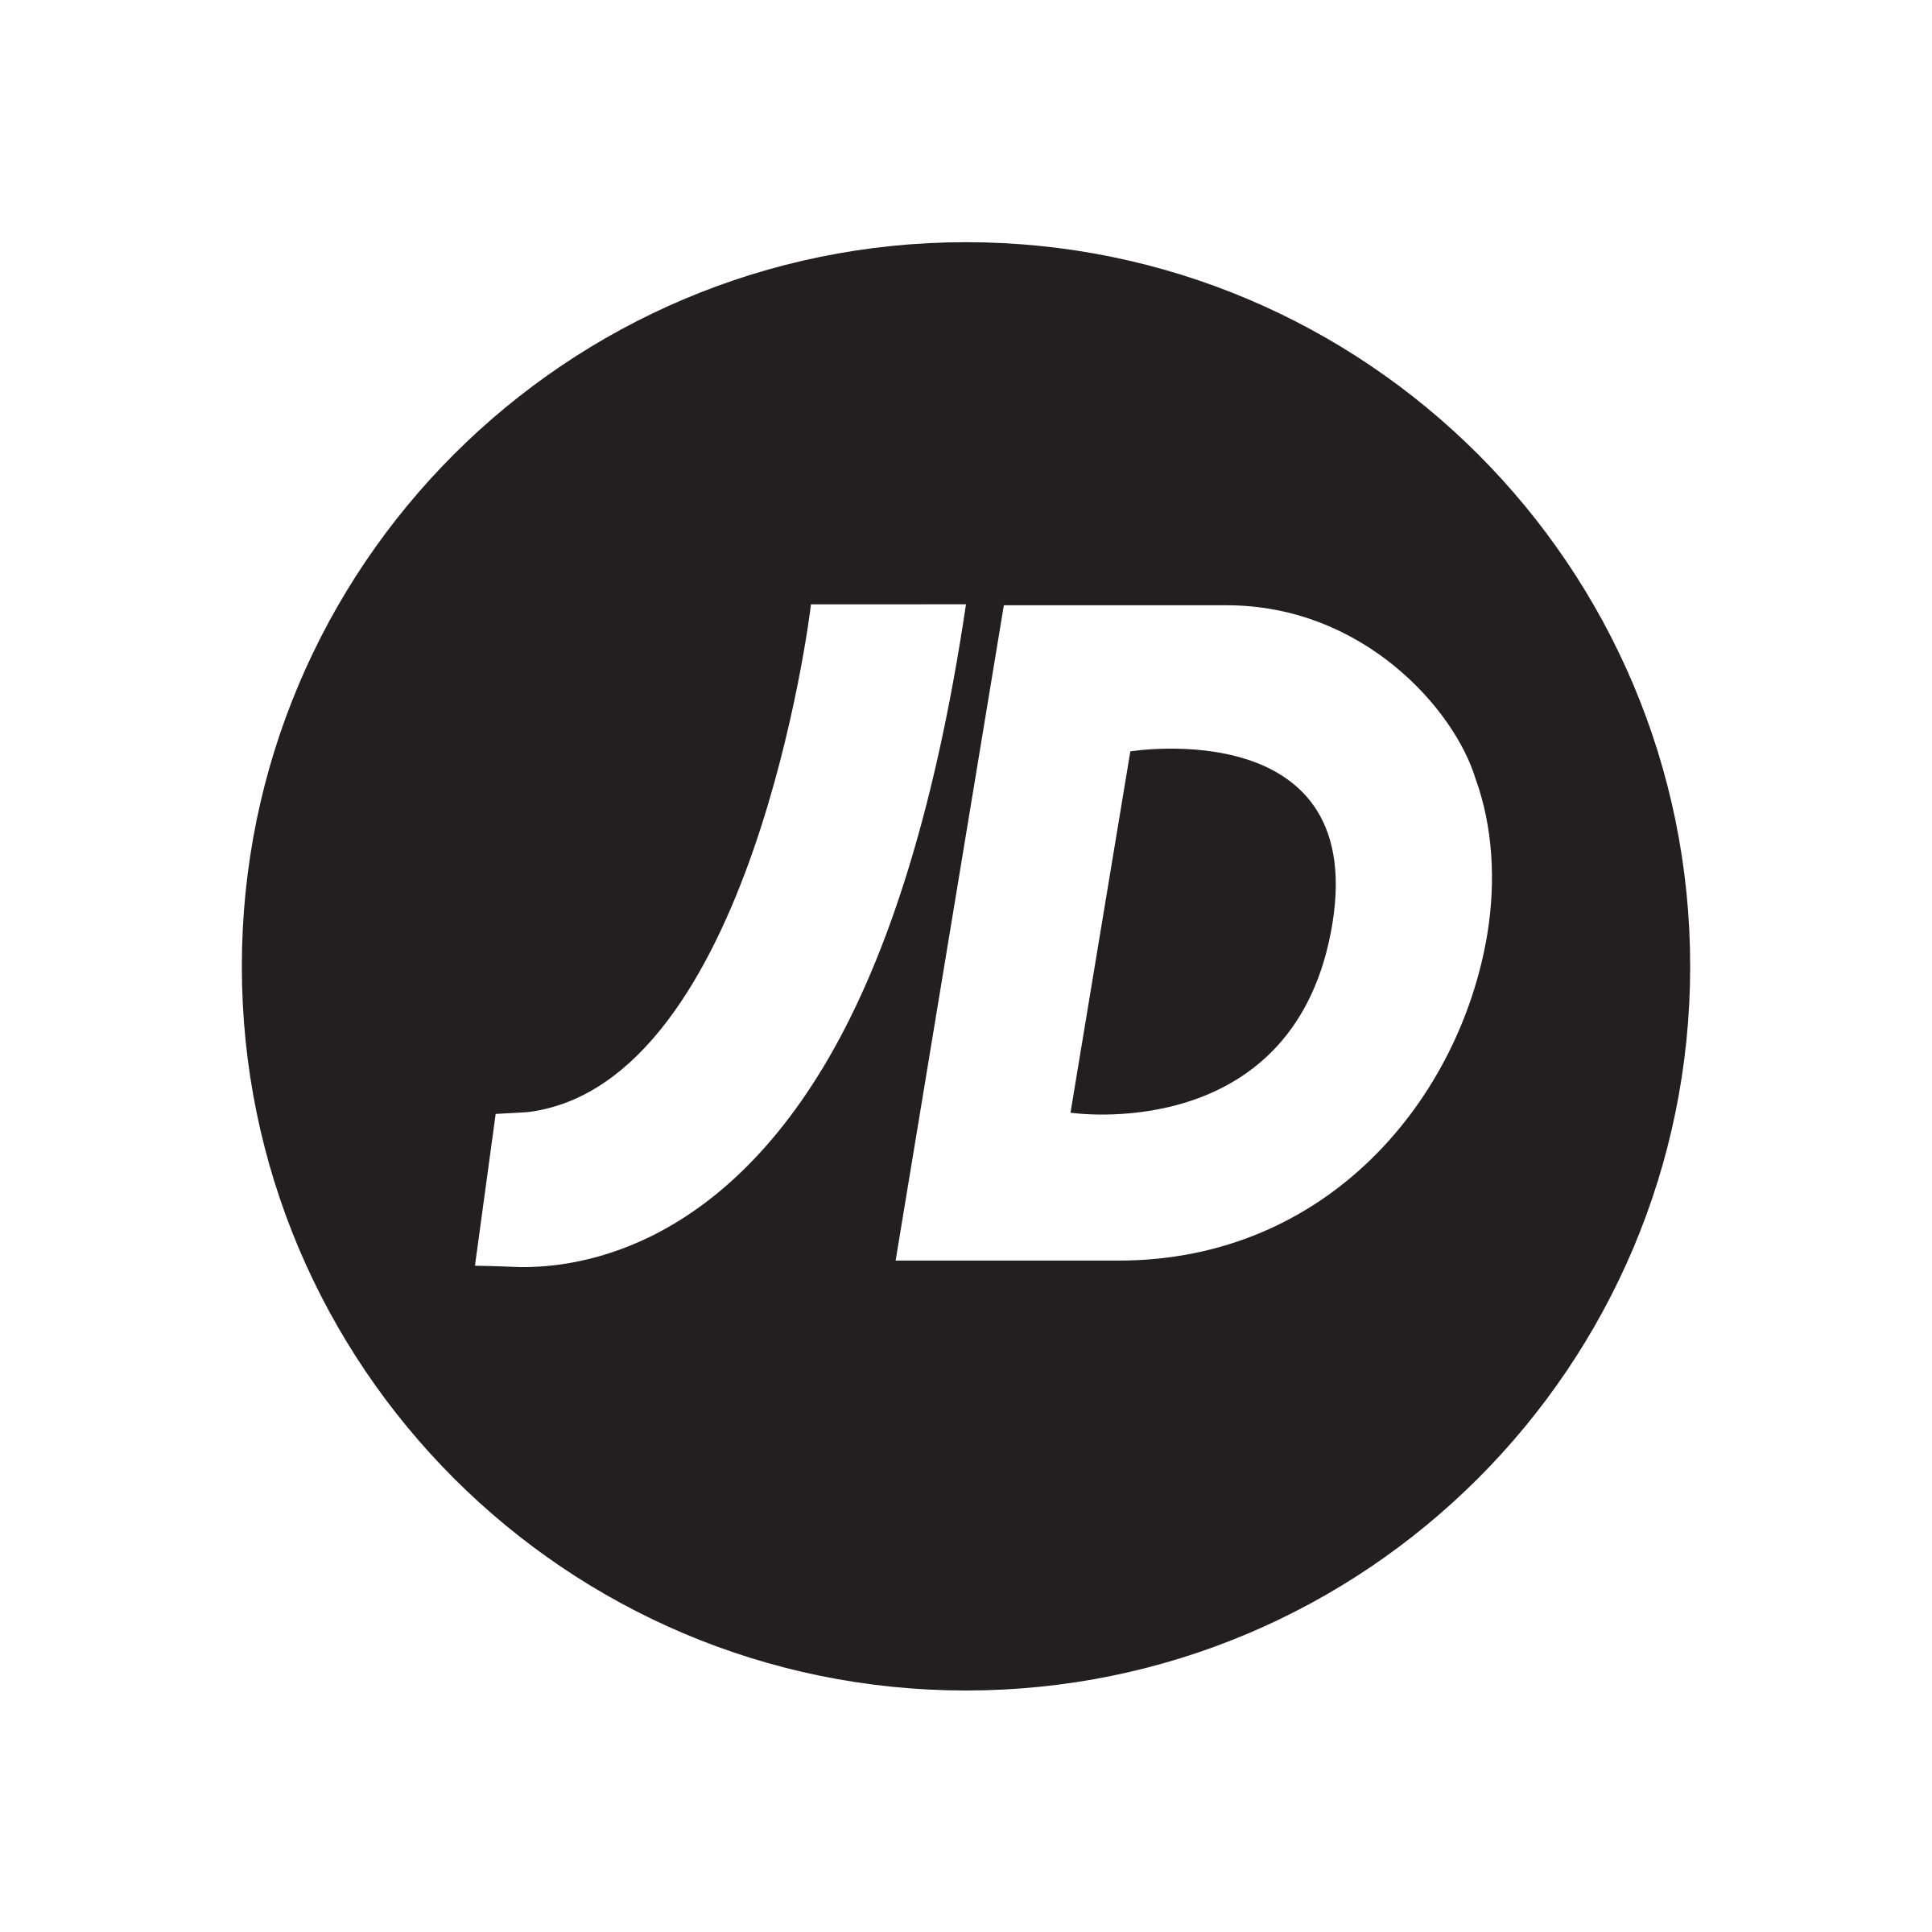 jd sports logo png transparent svg vector freebie supply jd sports logo png transparent svg